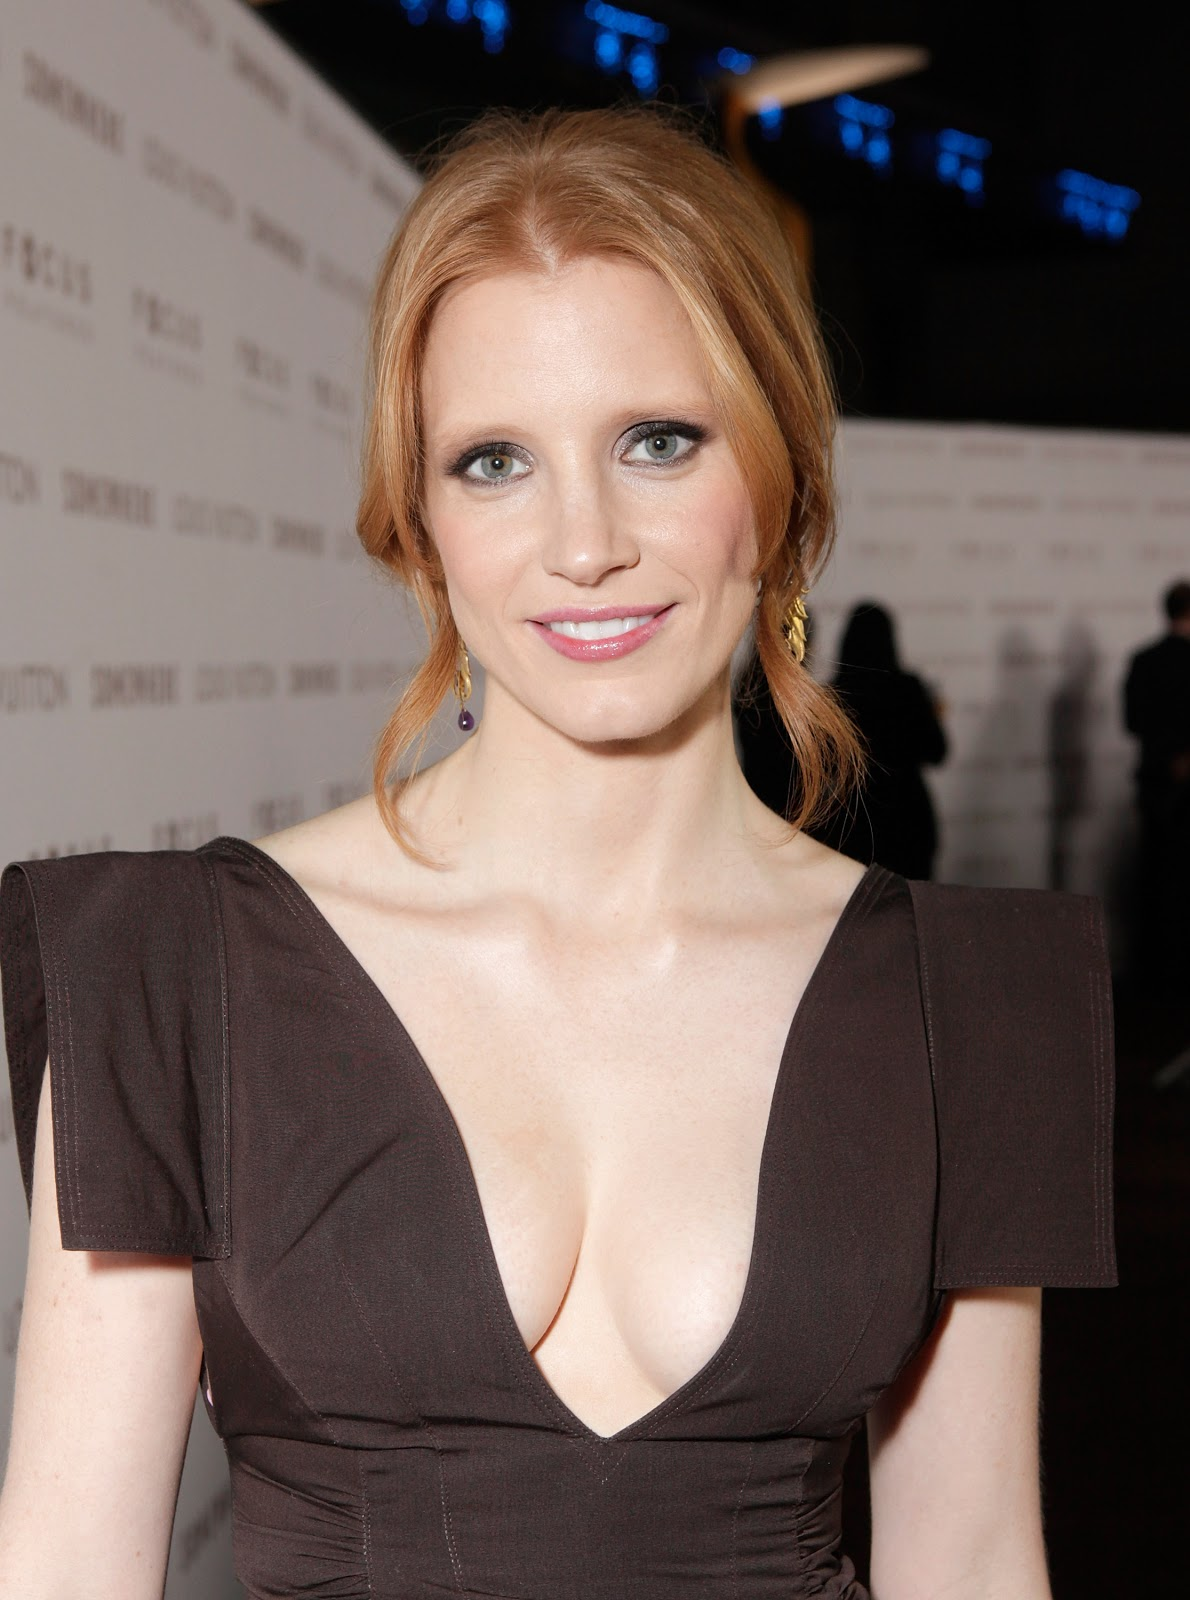 EBL: Jessica Chastain Rule 5 Jessica Chastain